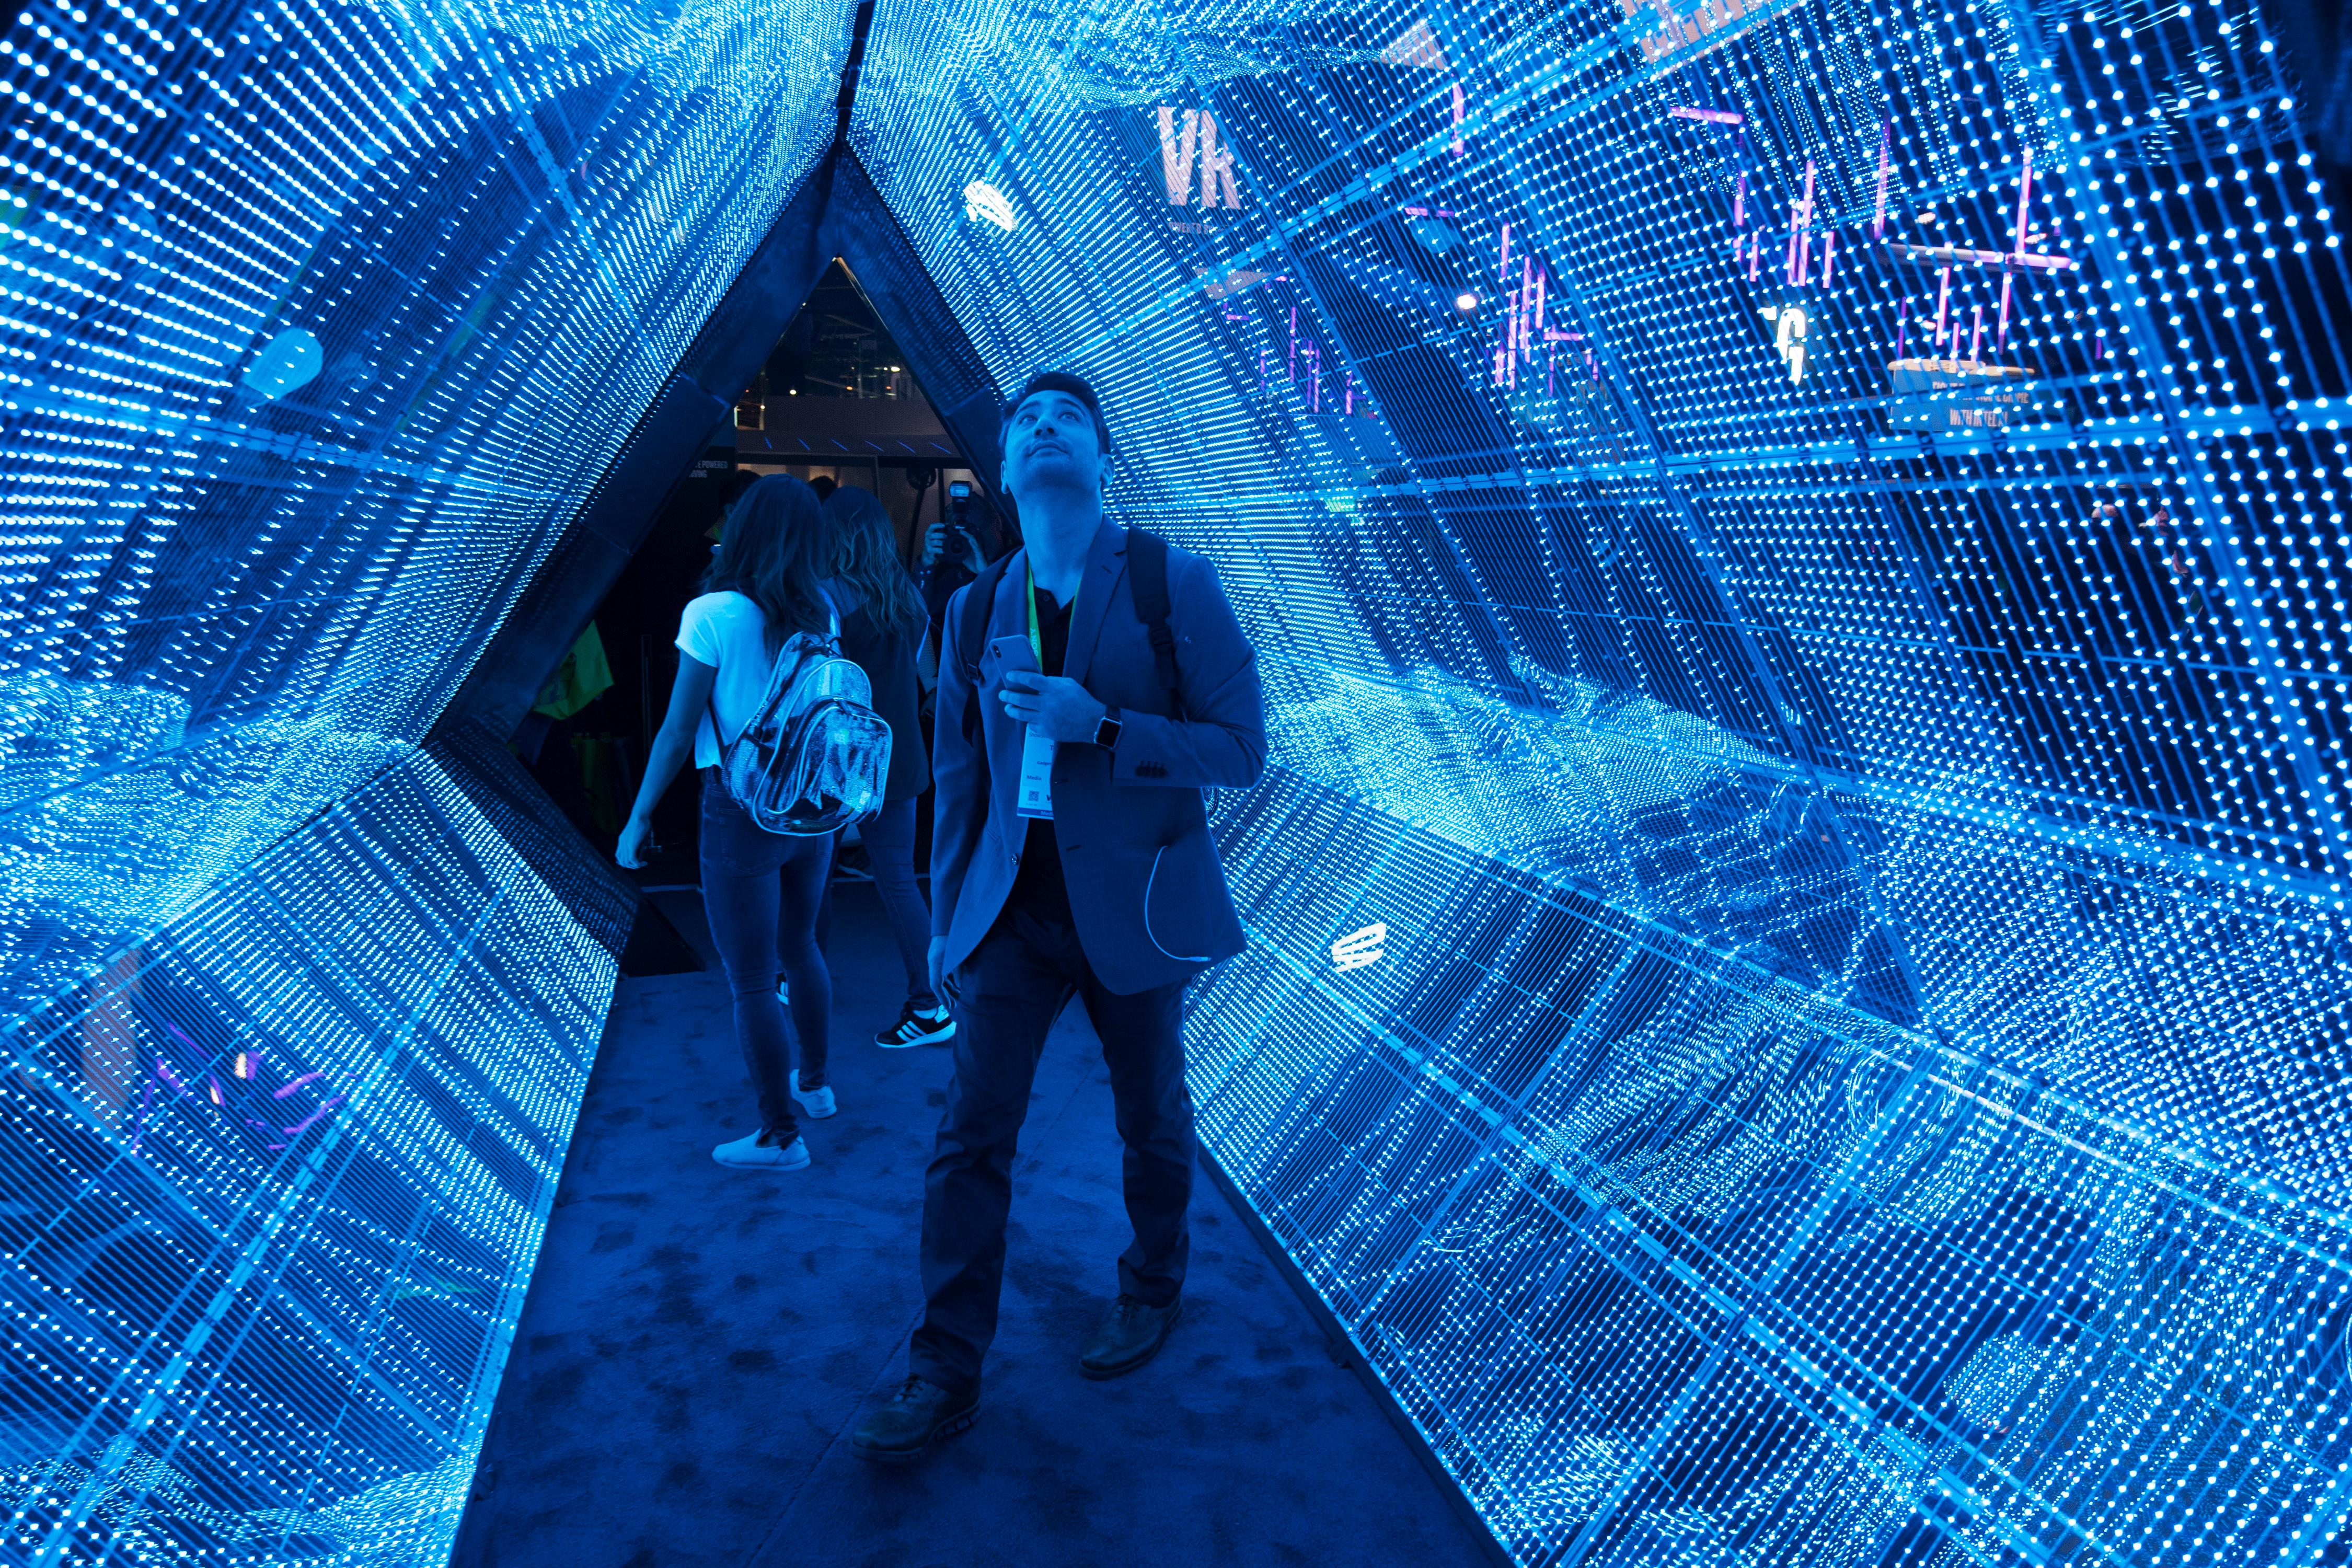 Todd Cox checks out a 5G tunnel from Intel during the second day of CES Wednesday, January 10, 2018, at the Las Vegas Convention Center. CREDIT: Sam Morris/Las Vegas News Bureau